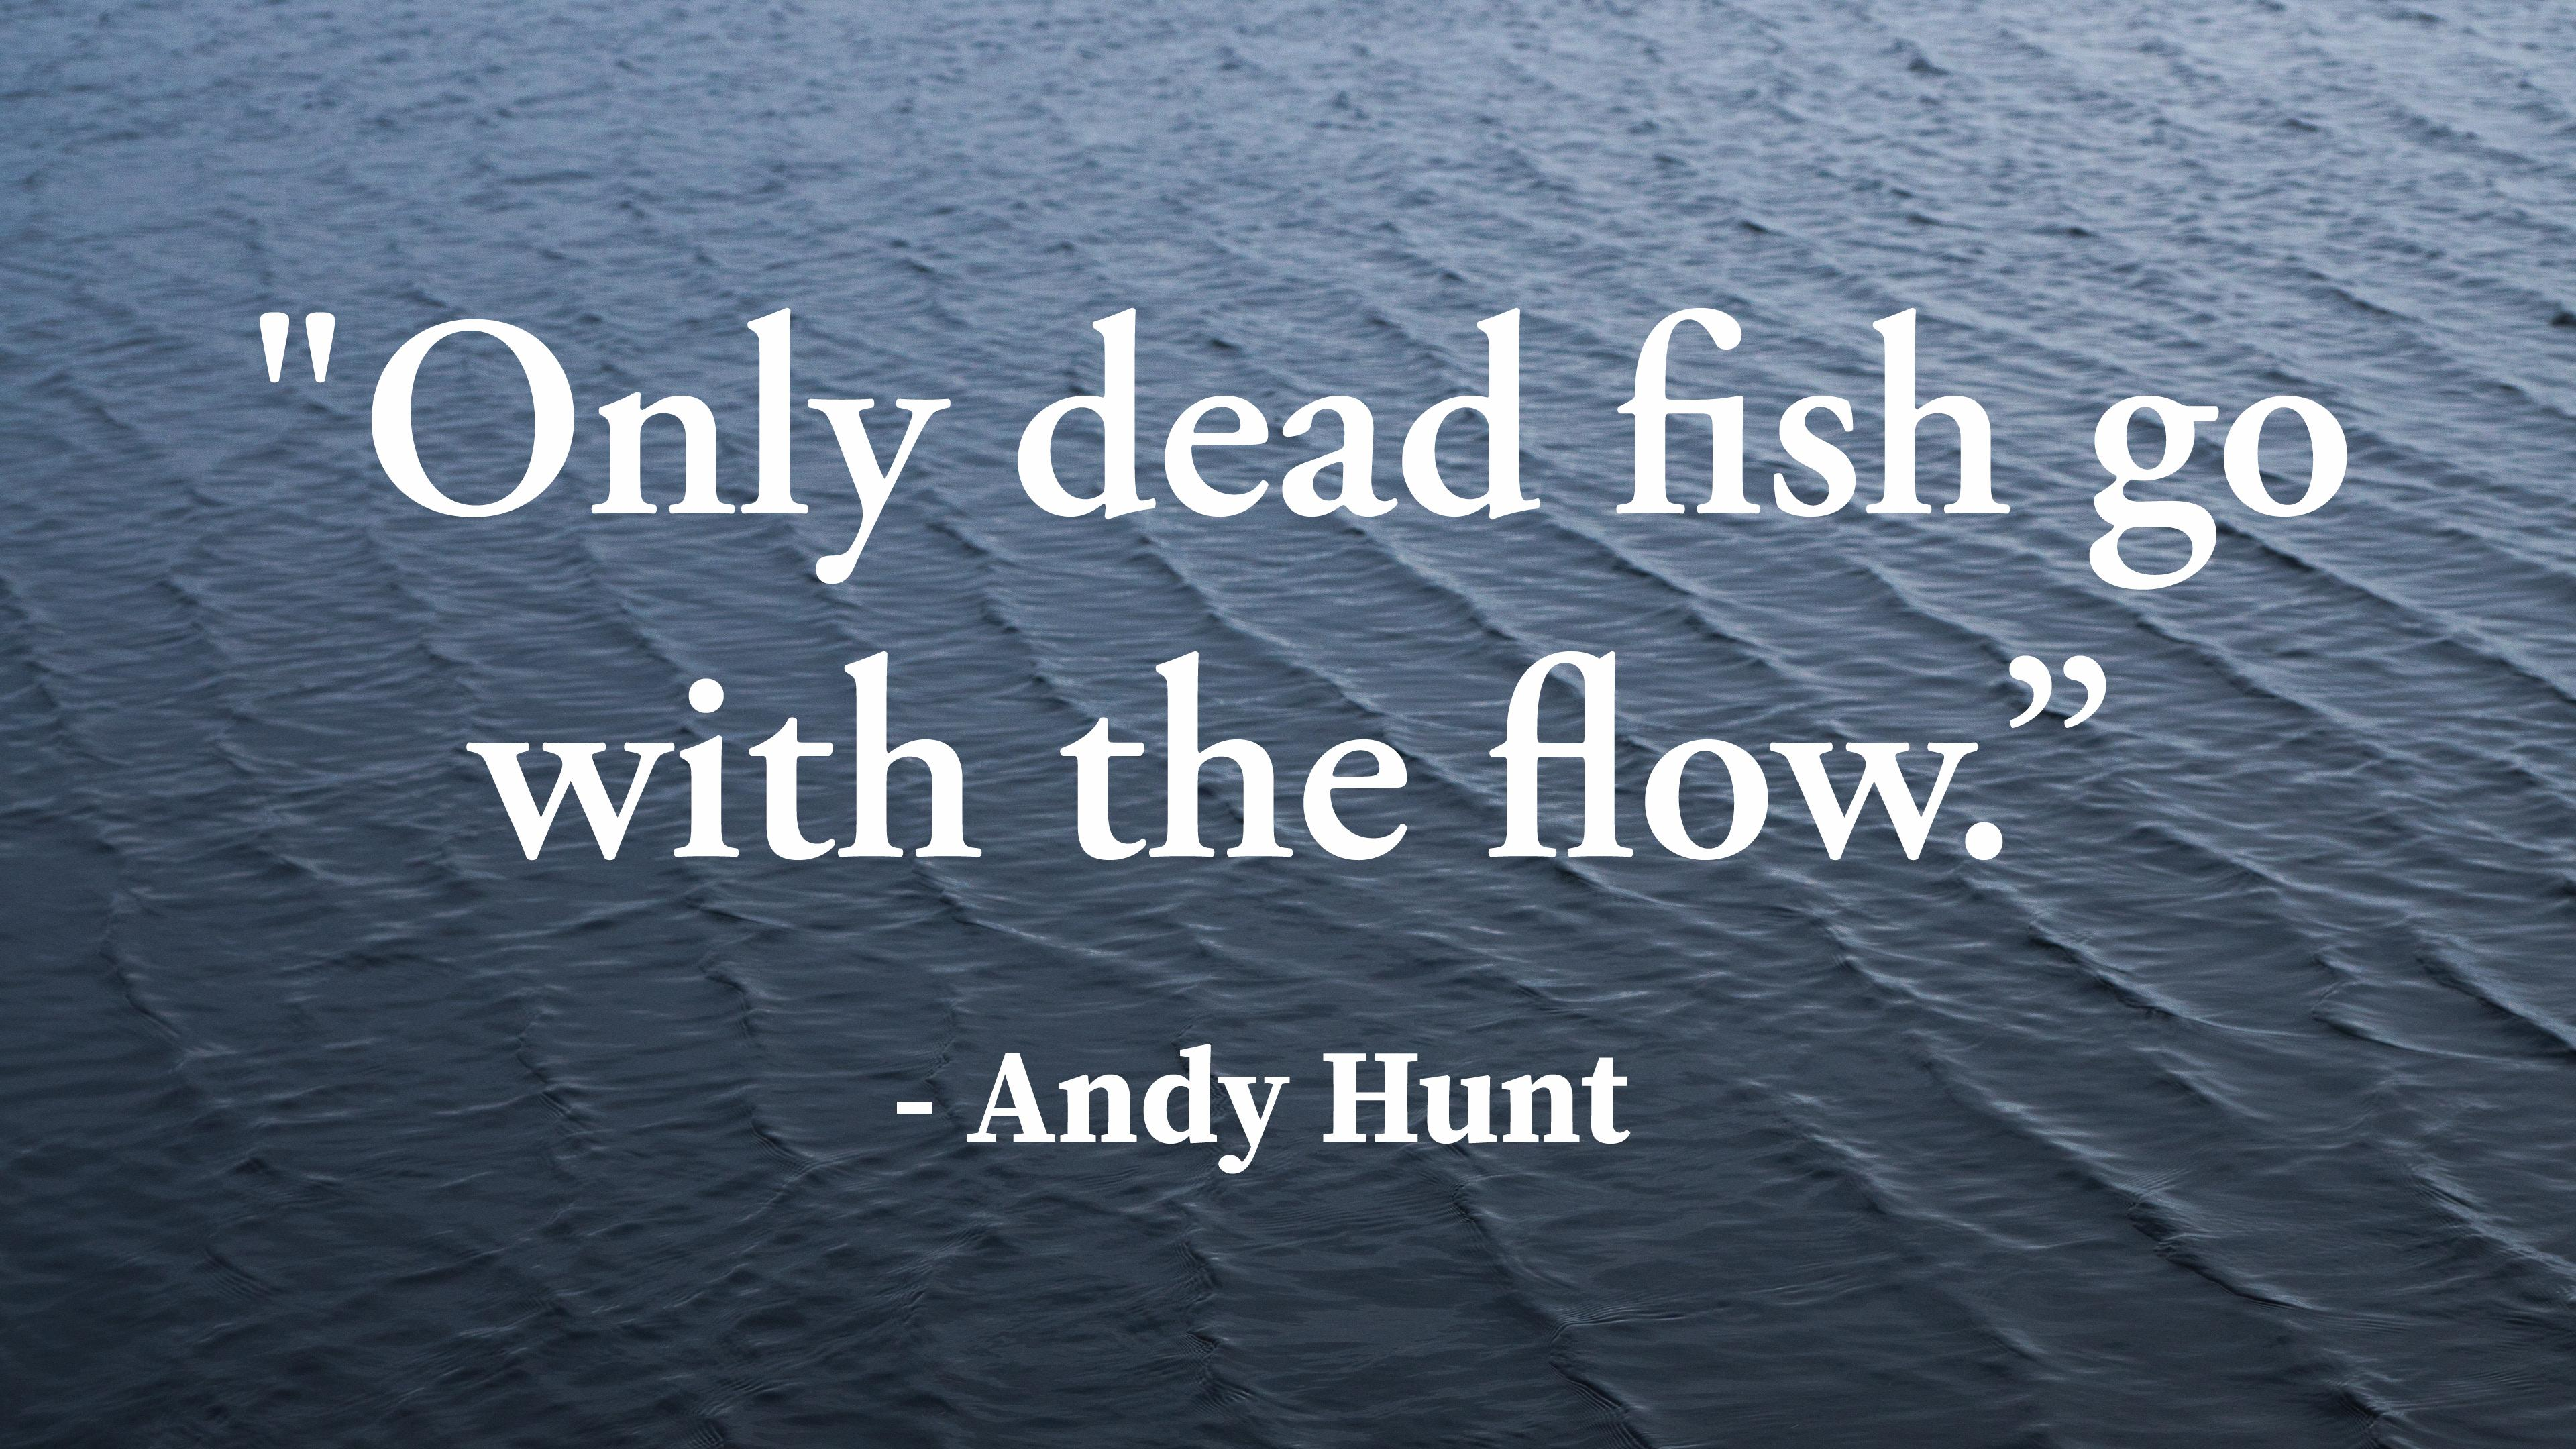 """Only dead fish go with the flow."" – Andy Hunt [3840 x 2160]"